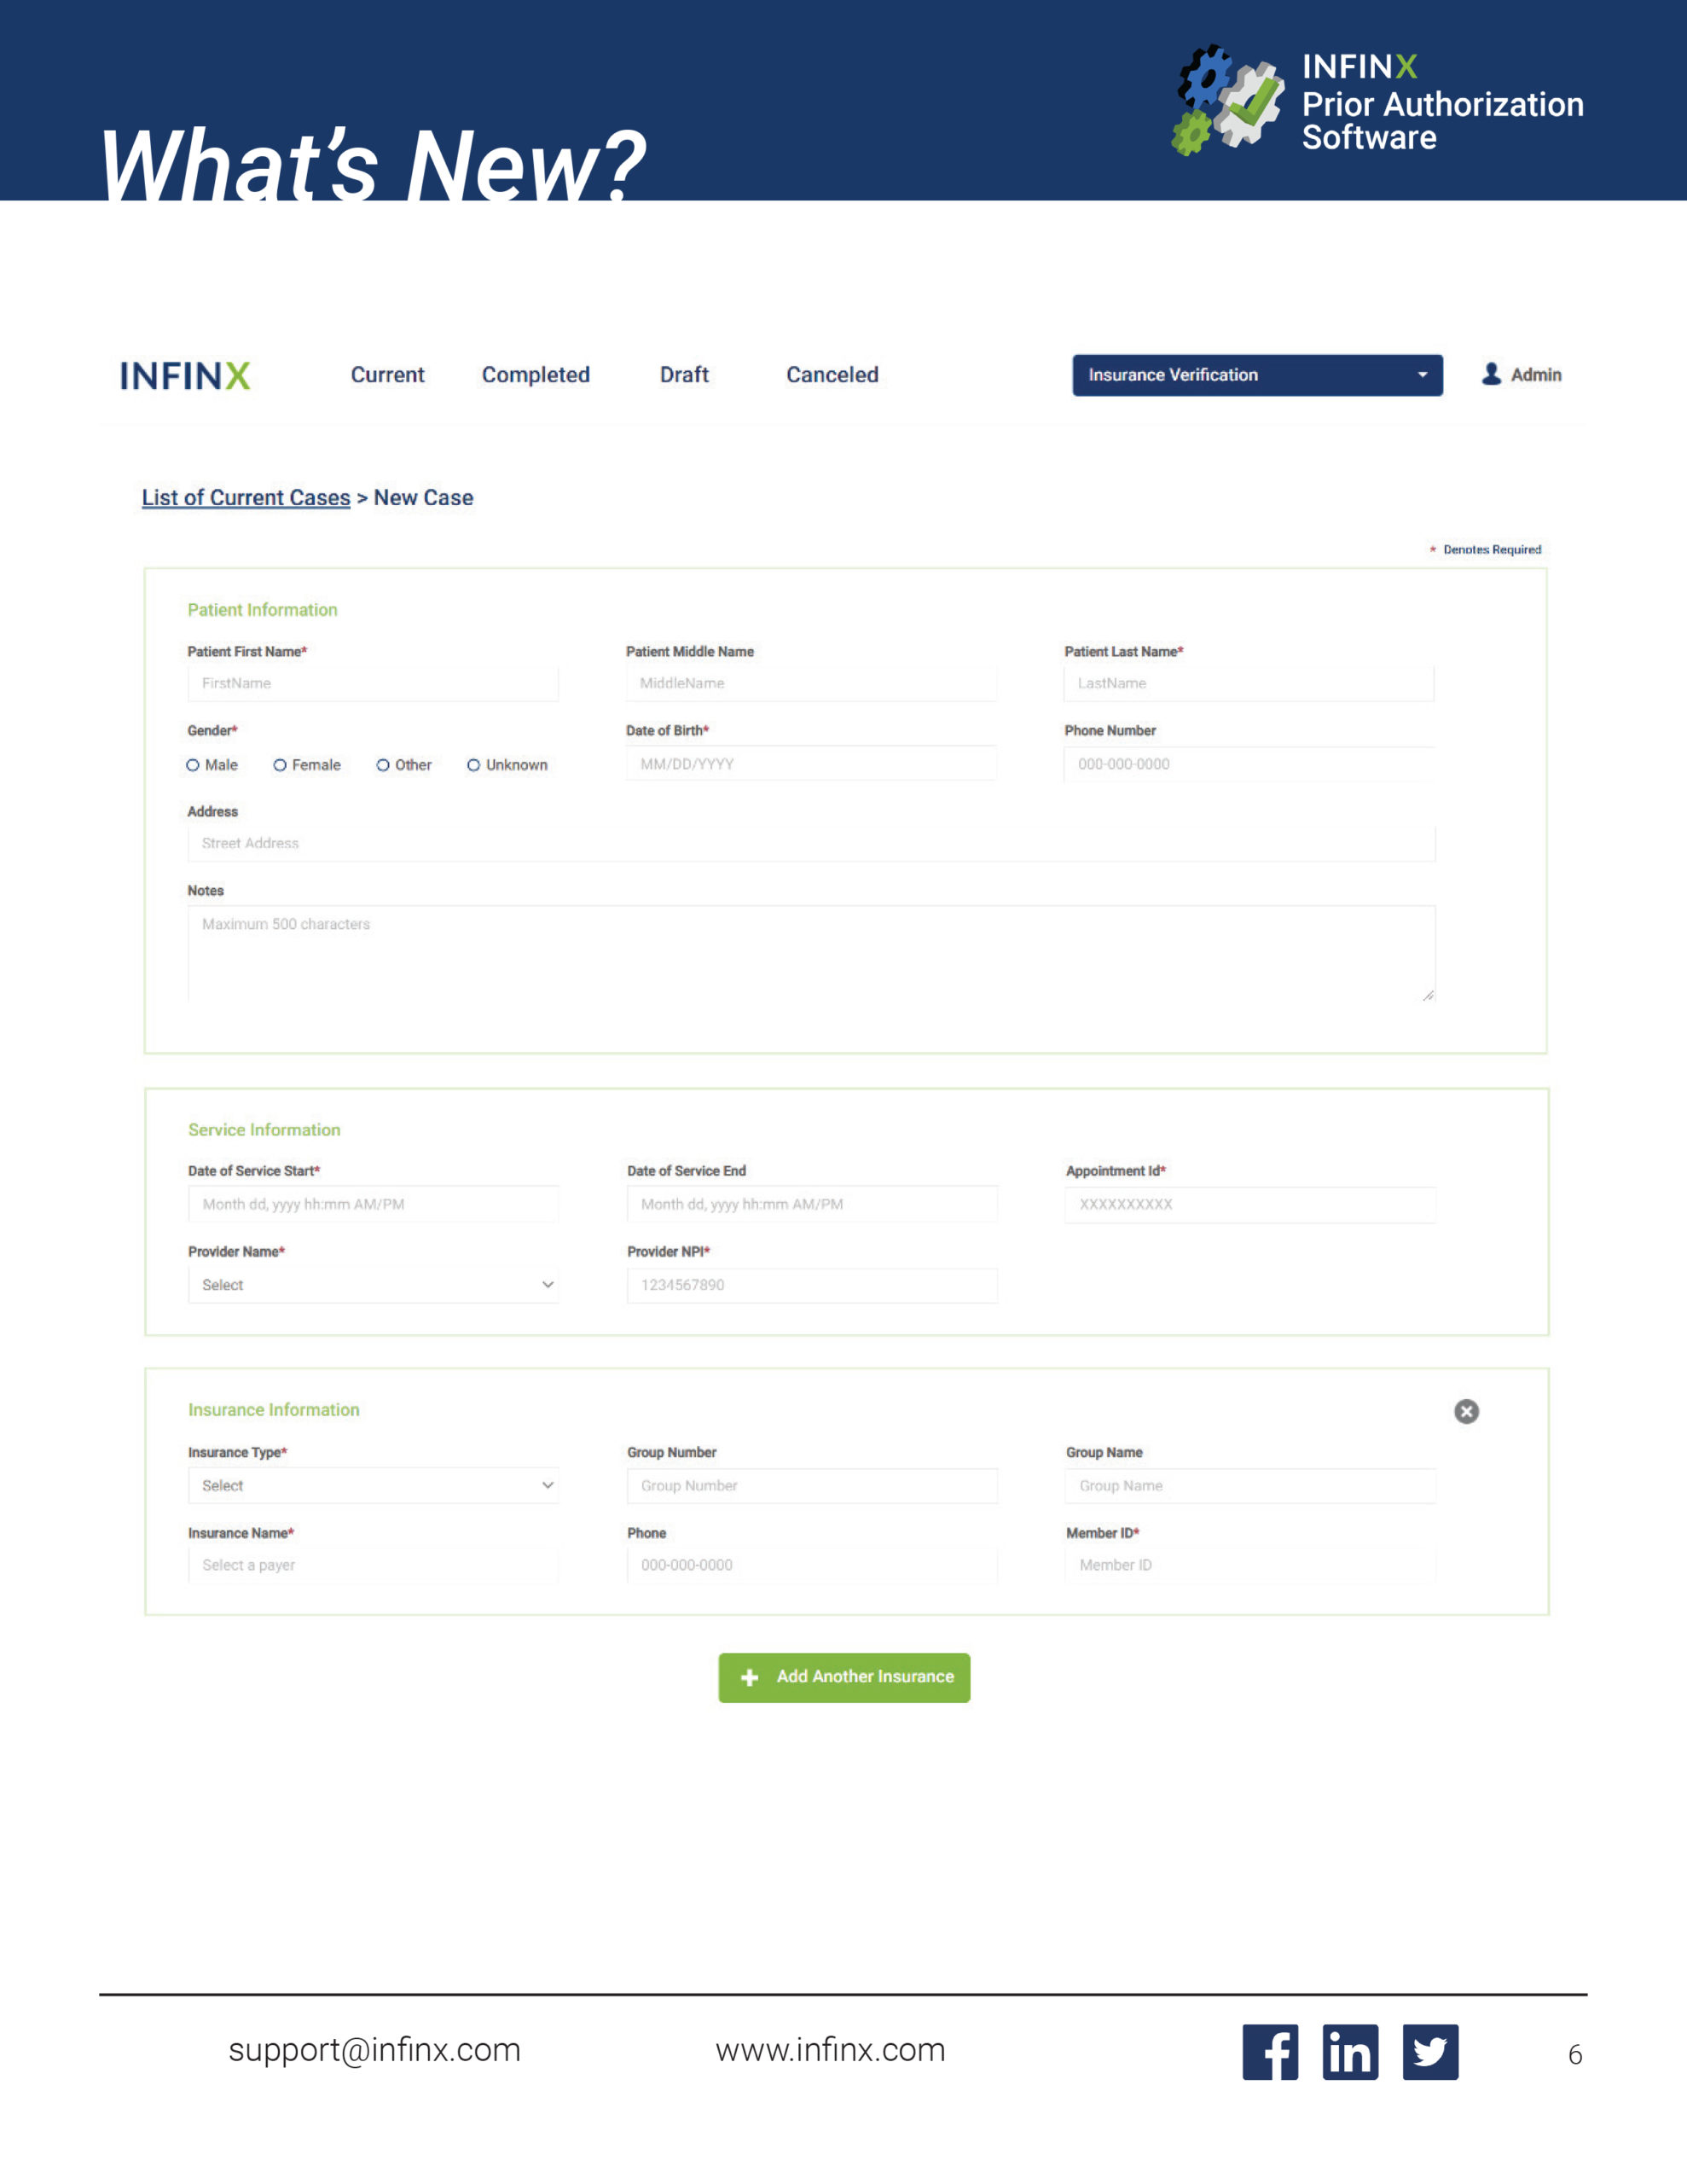 Infinx Prior Authorization Software 4.1 Release Notes October 2020-Final-6